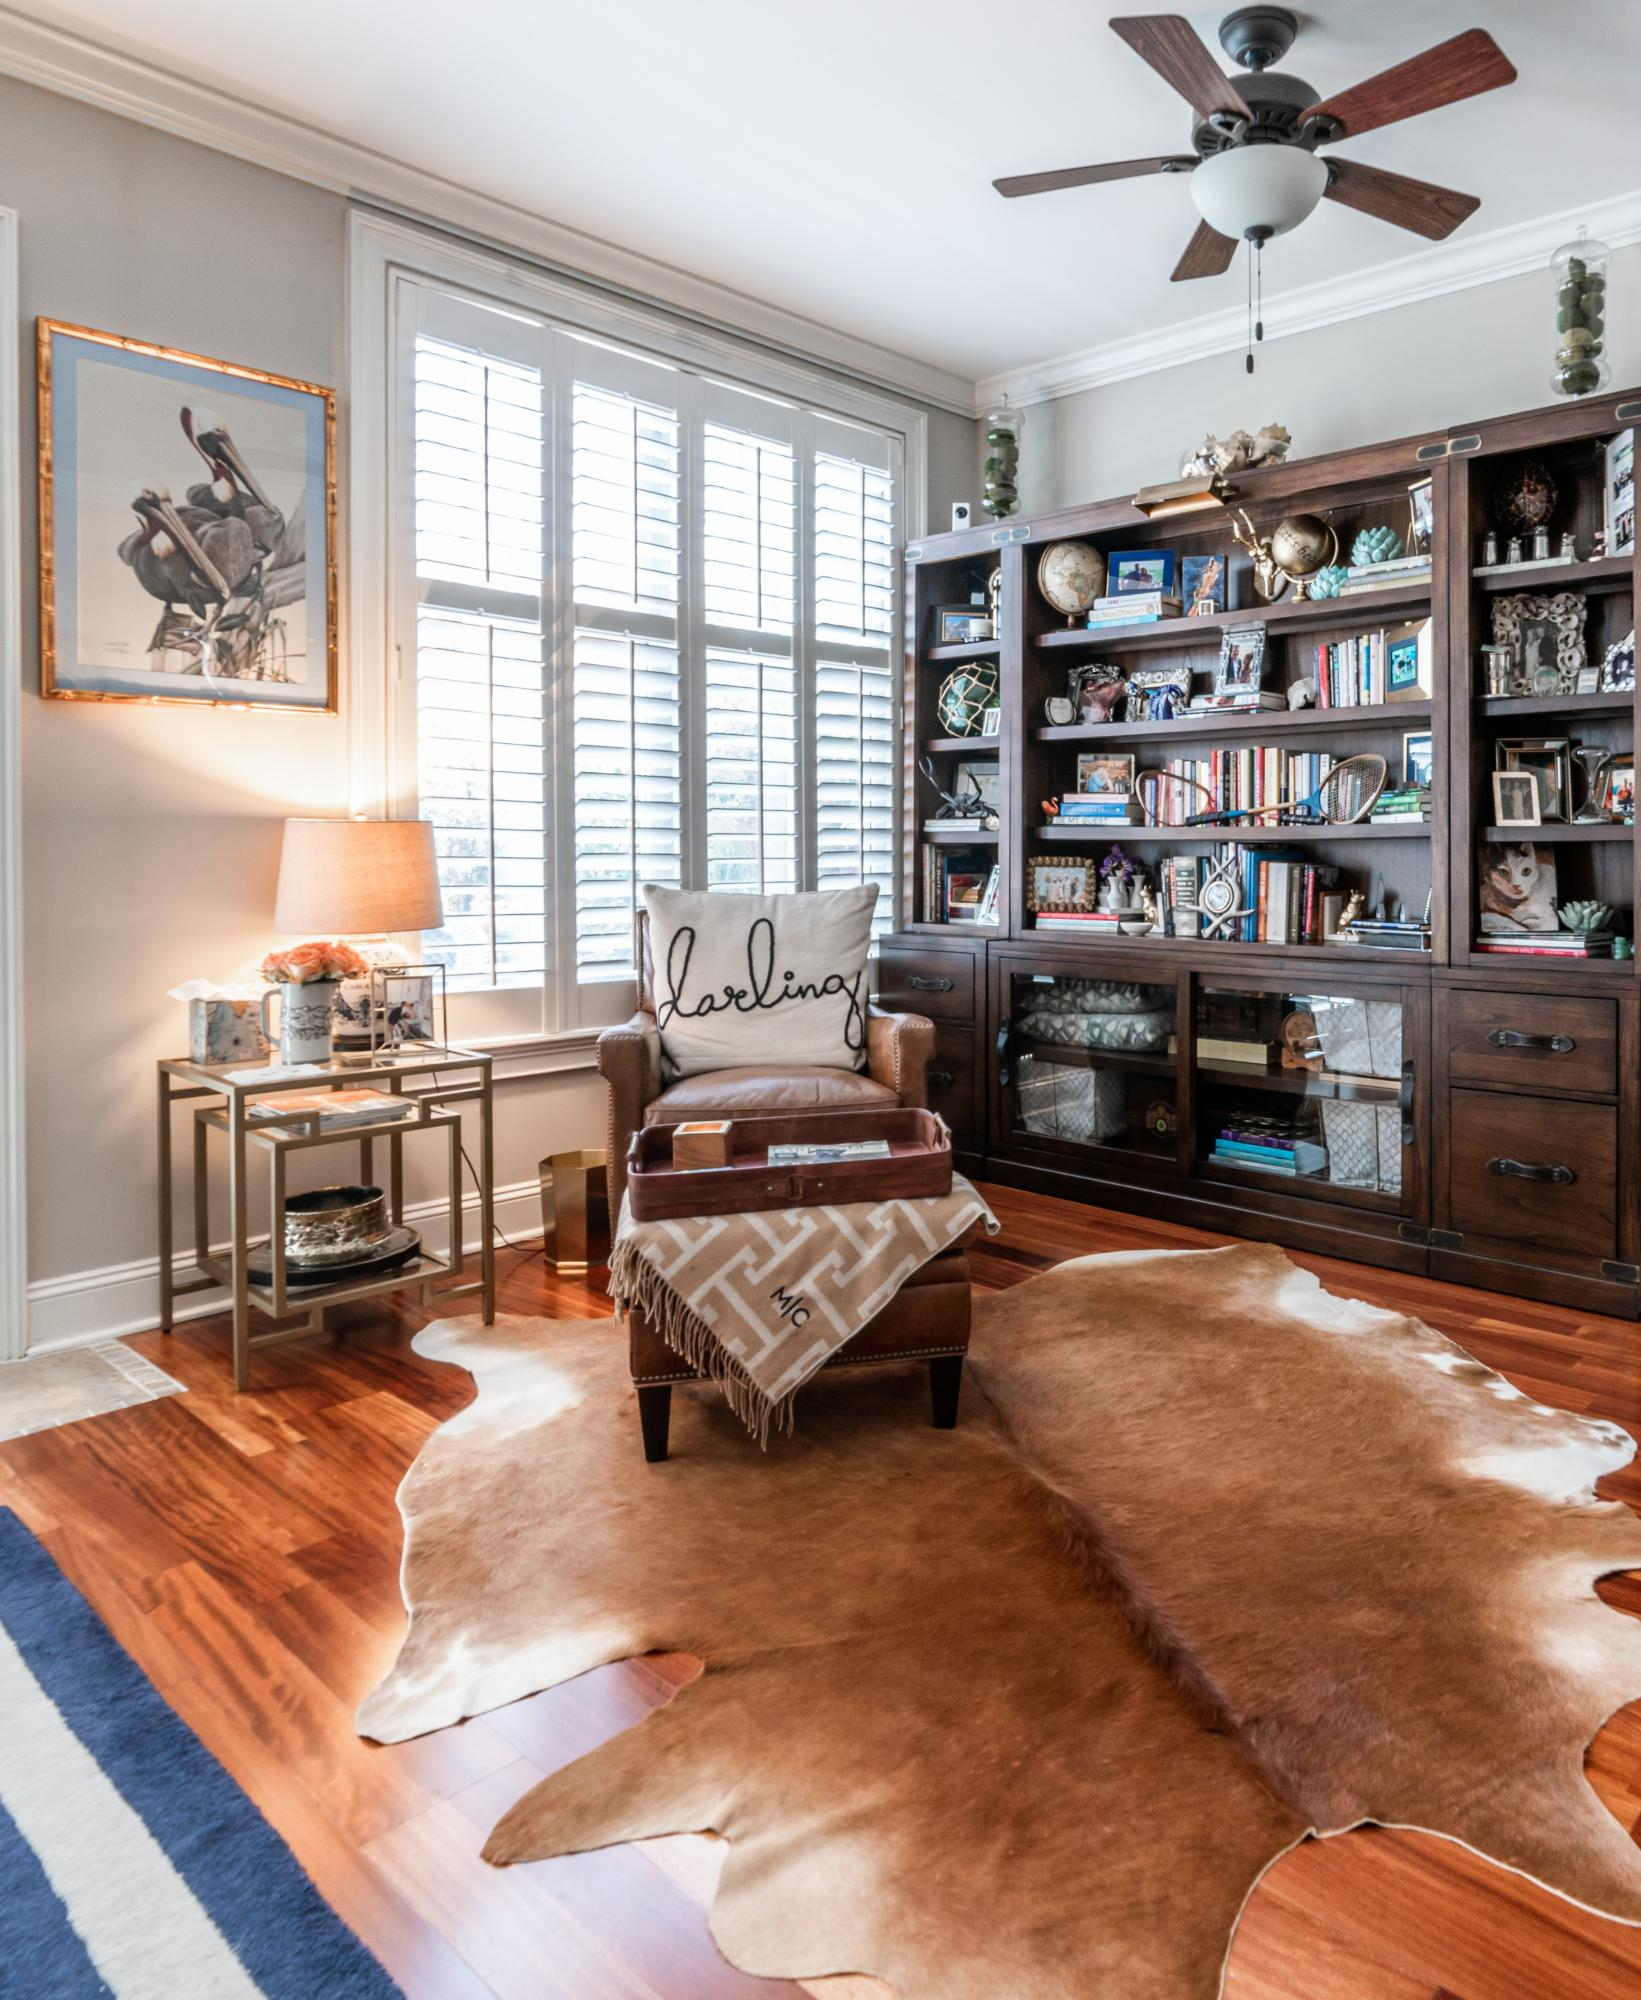 498 Albemarle Road UNIT 103 Charleston, SC 29407